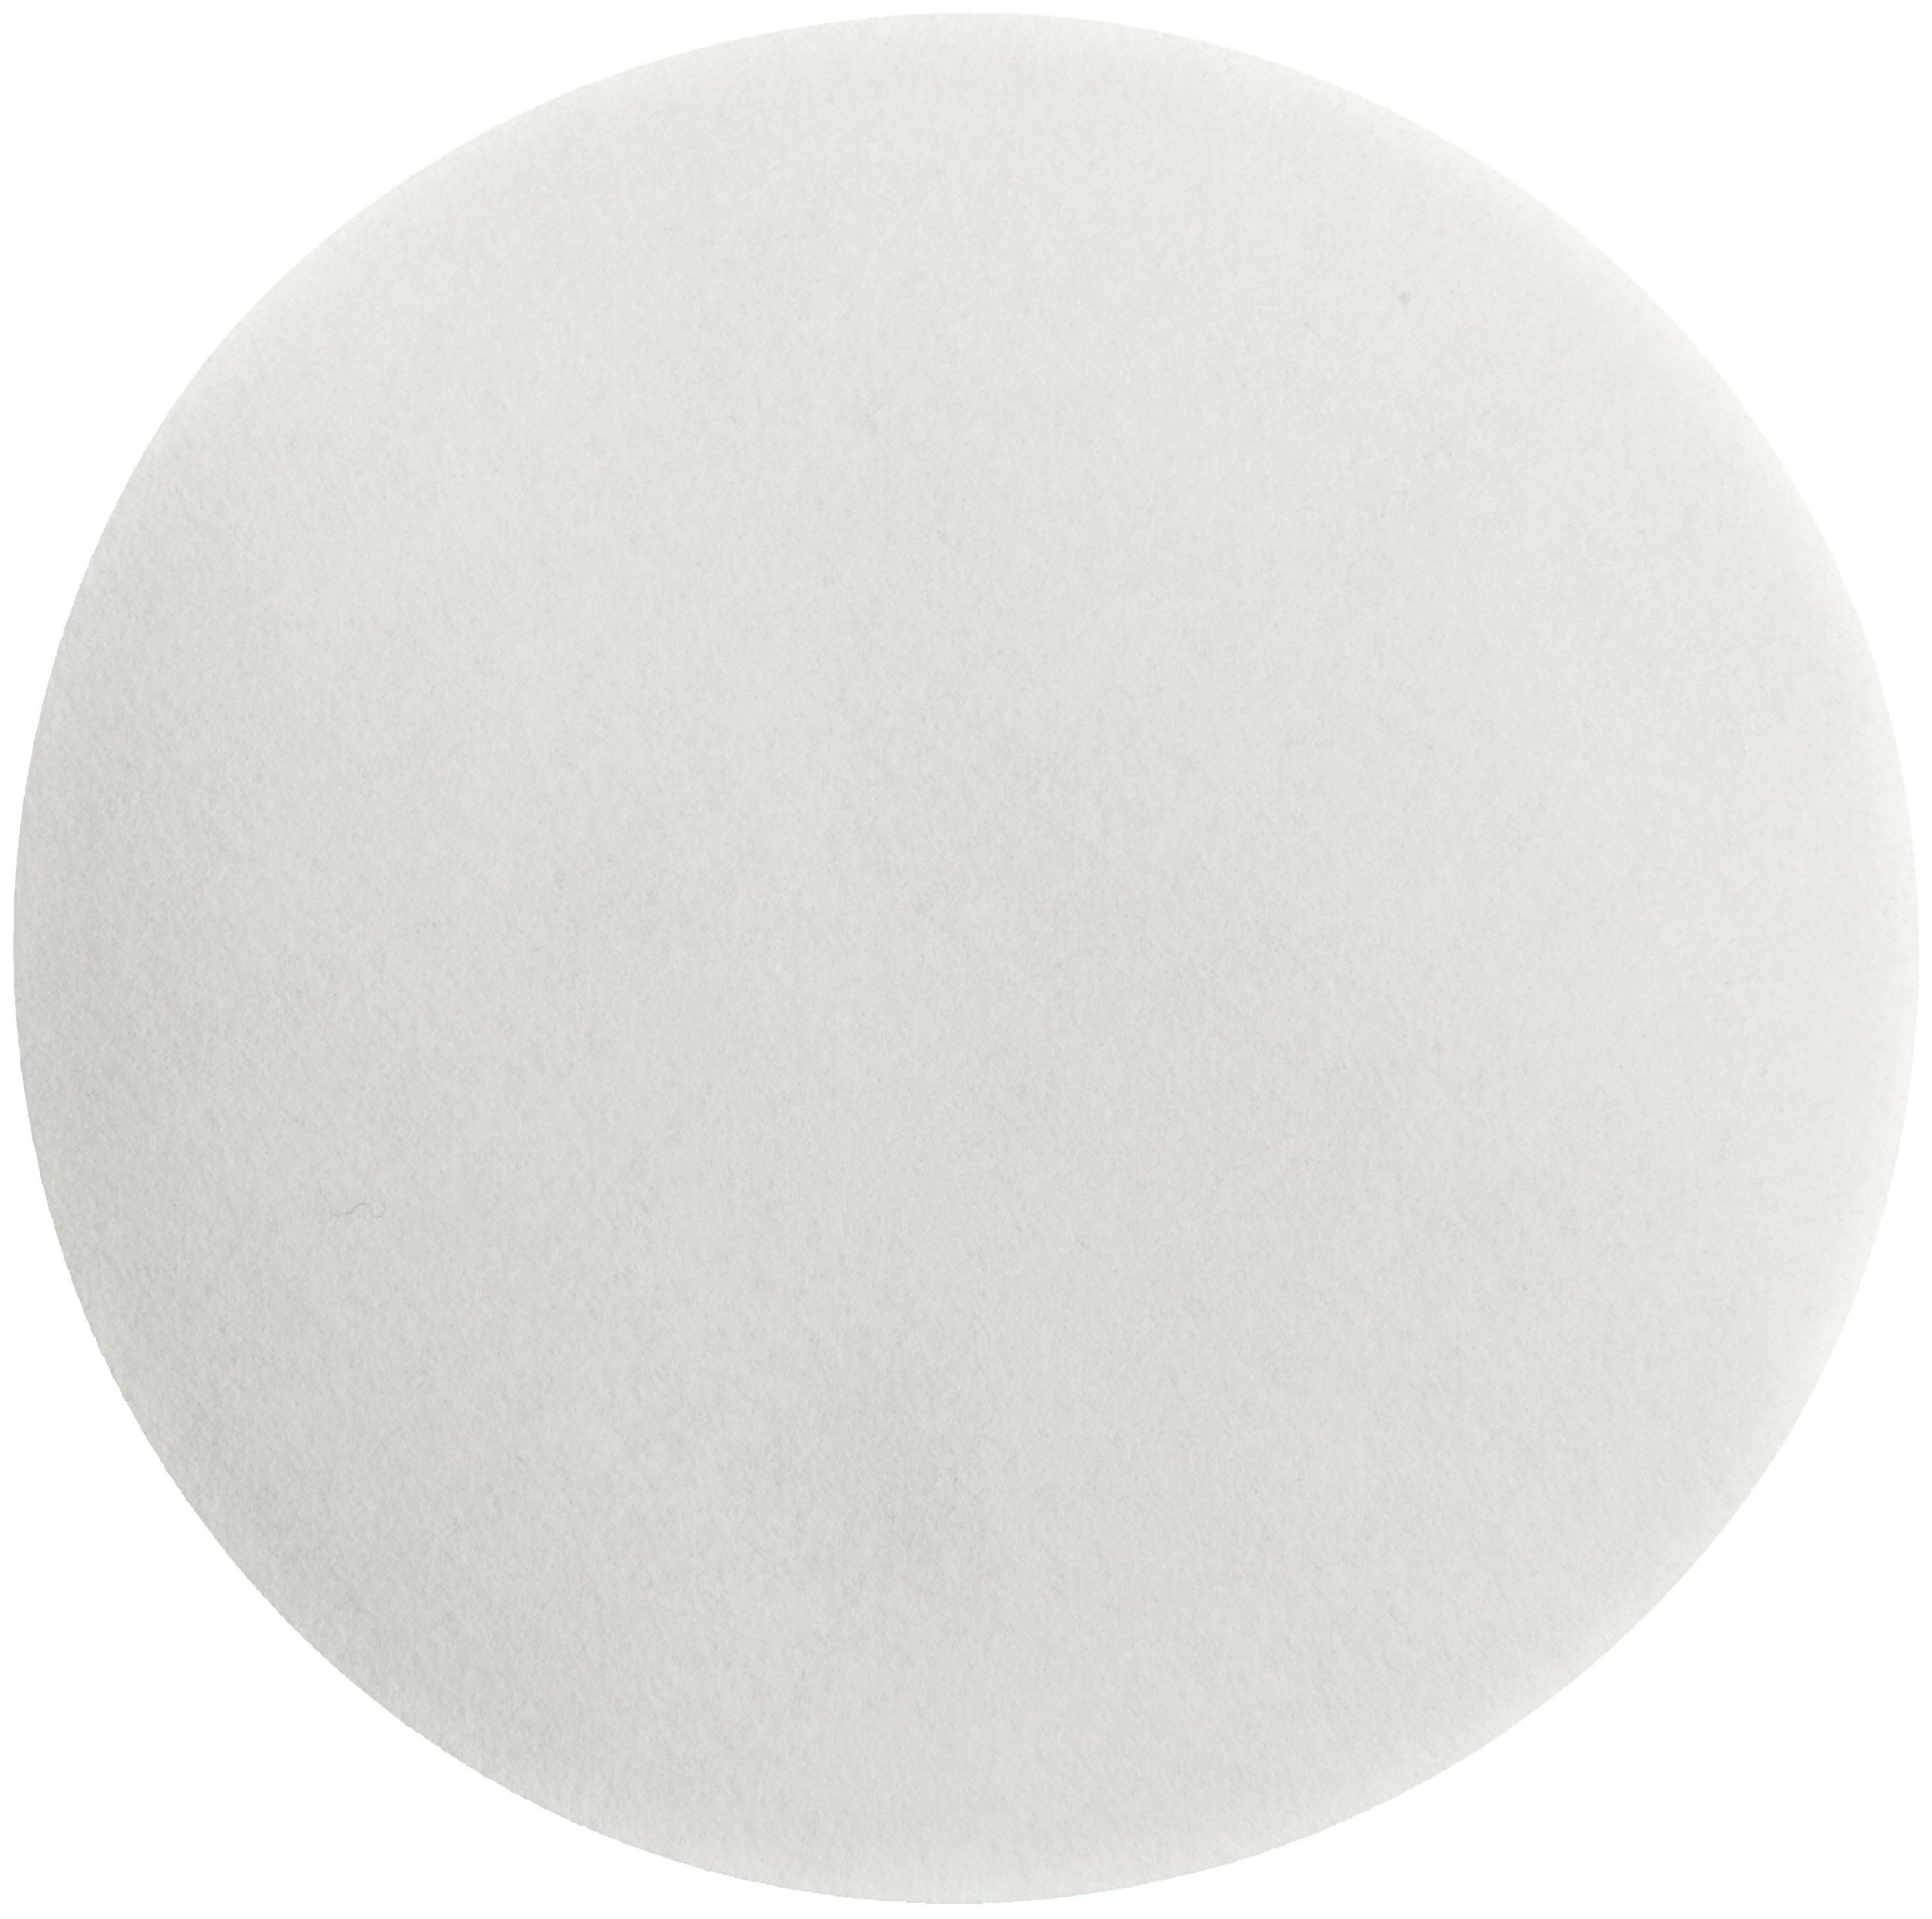 Whatman 2200-150 1PS Phase Separator Filter Paper, 150mm Diameter (Pack of 100)